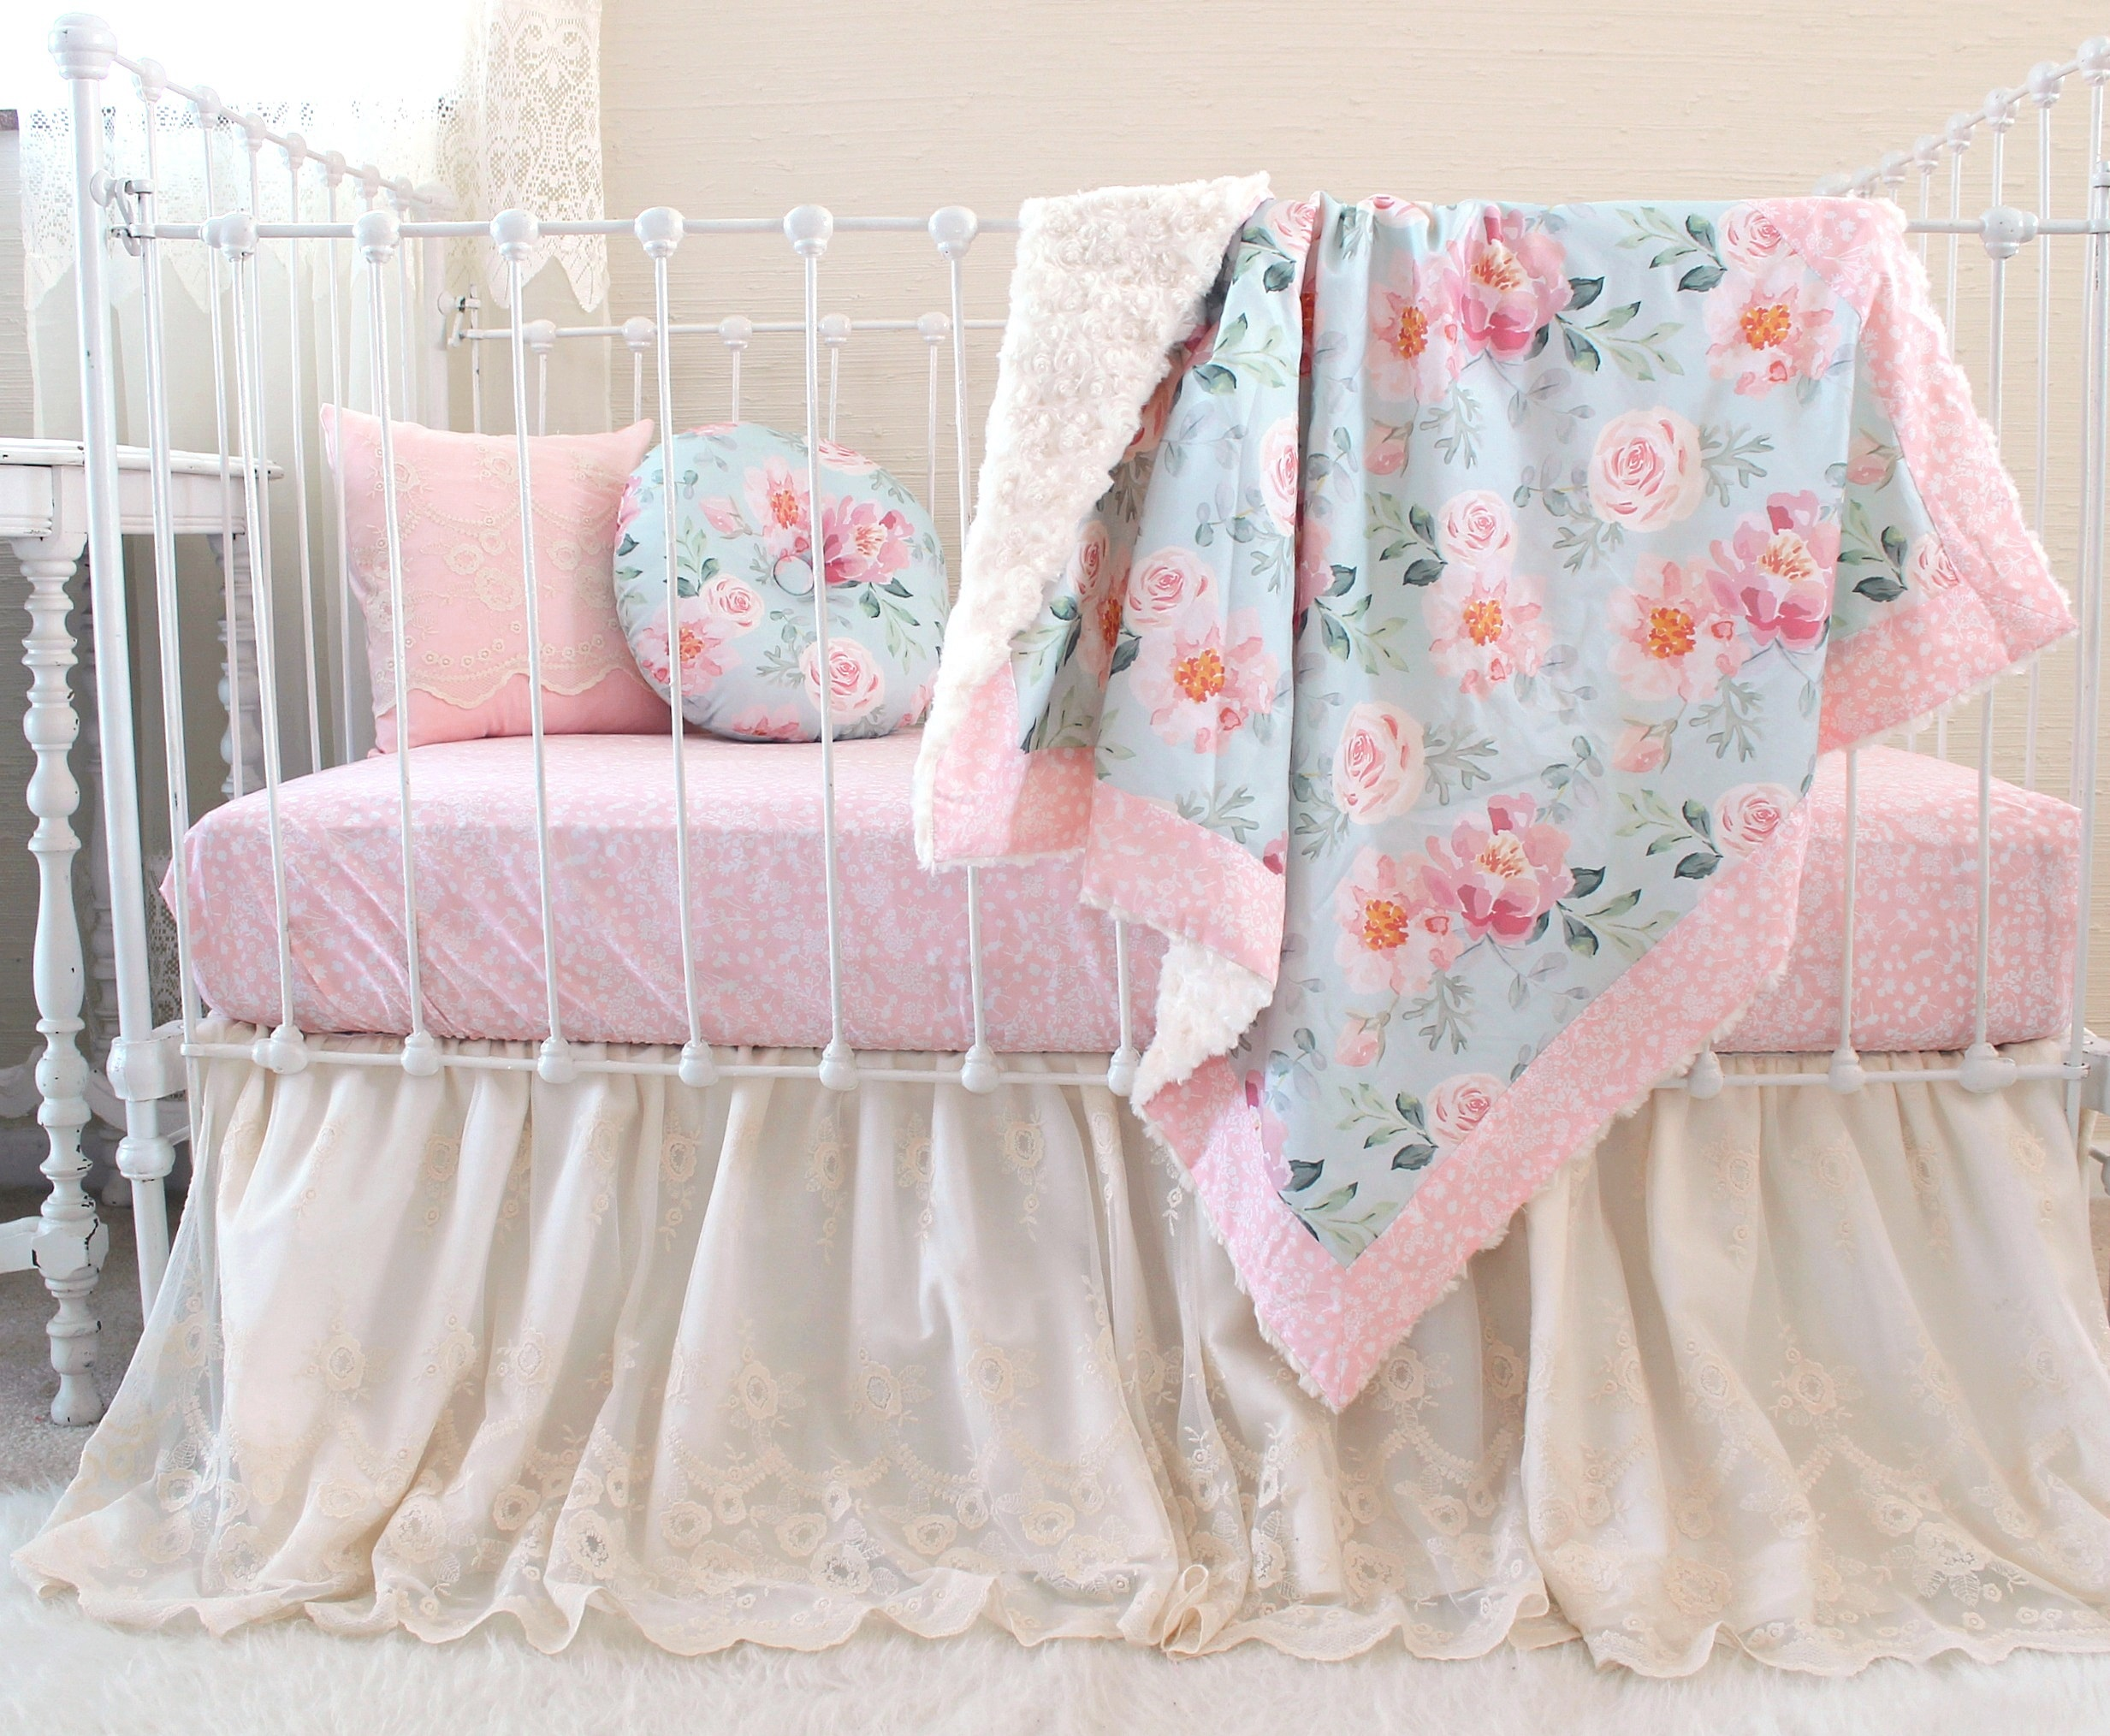 Vintage Floral Crib Bedding Romantic Blooms Lottie Da